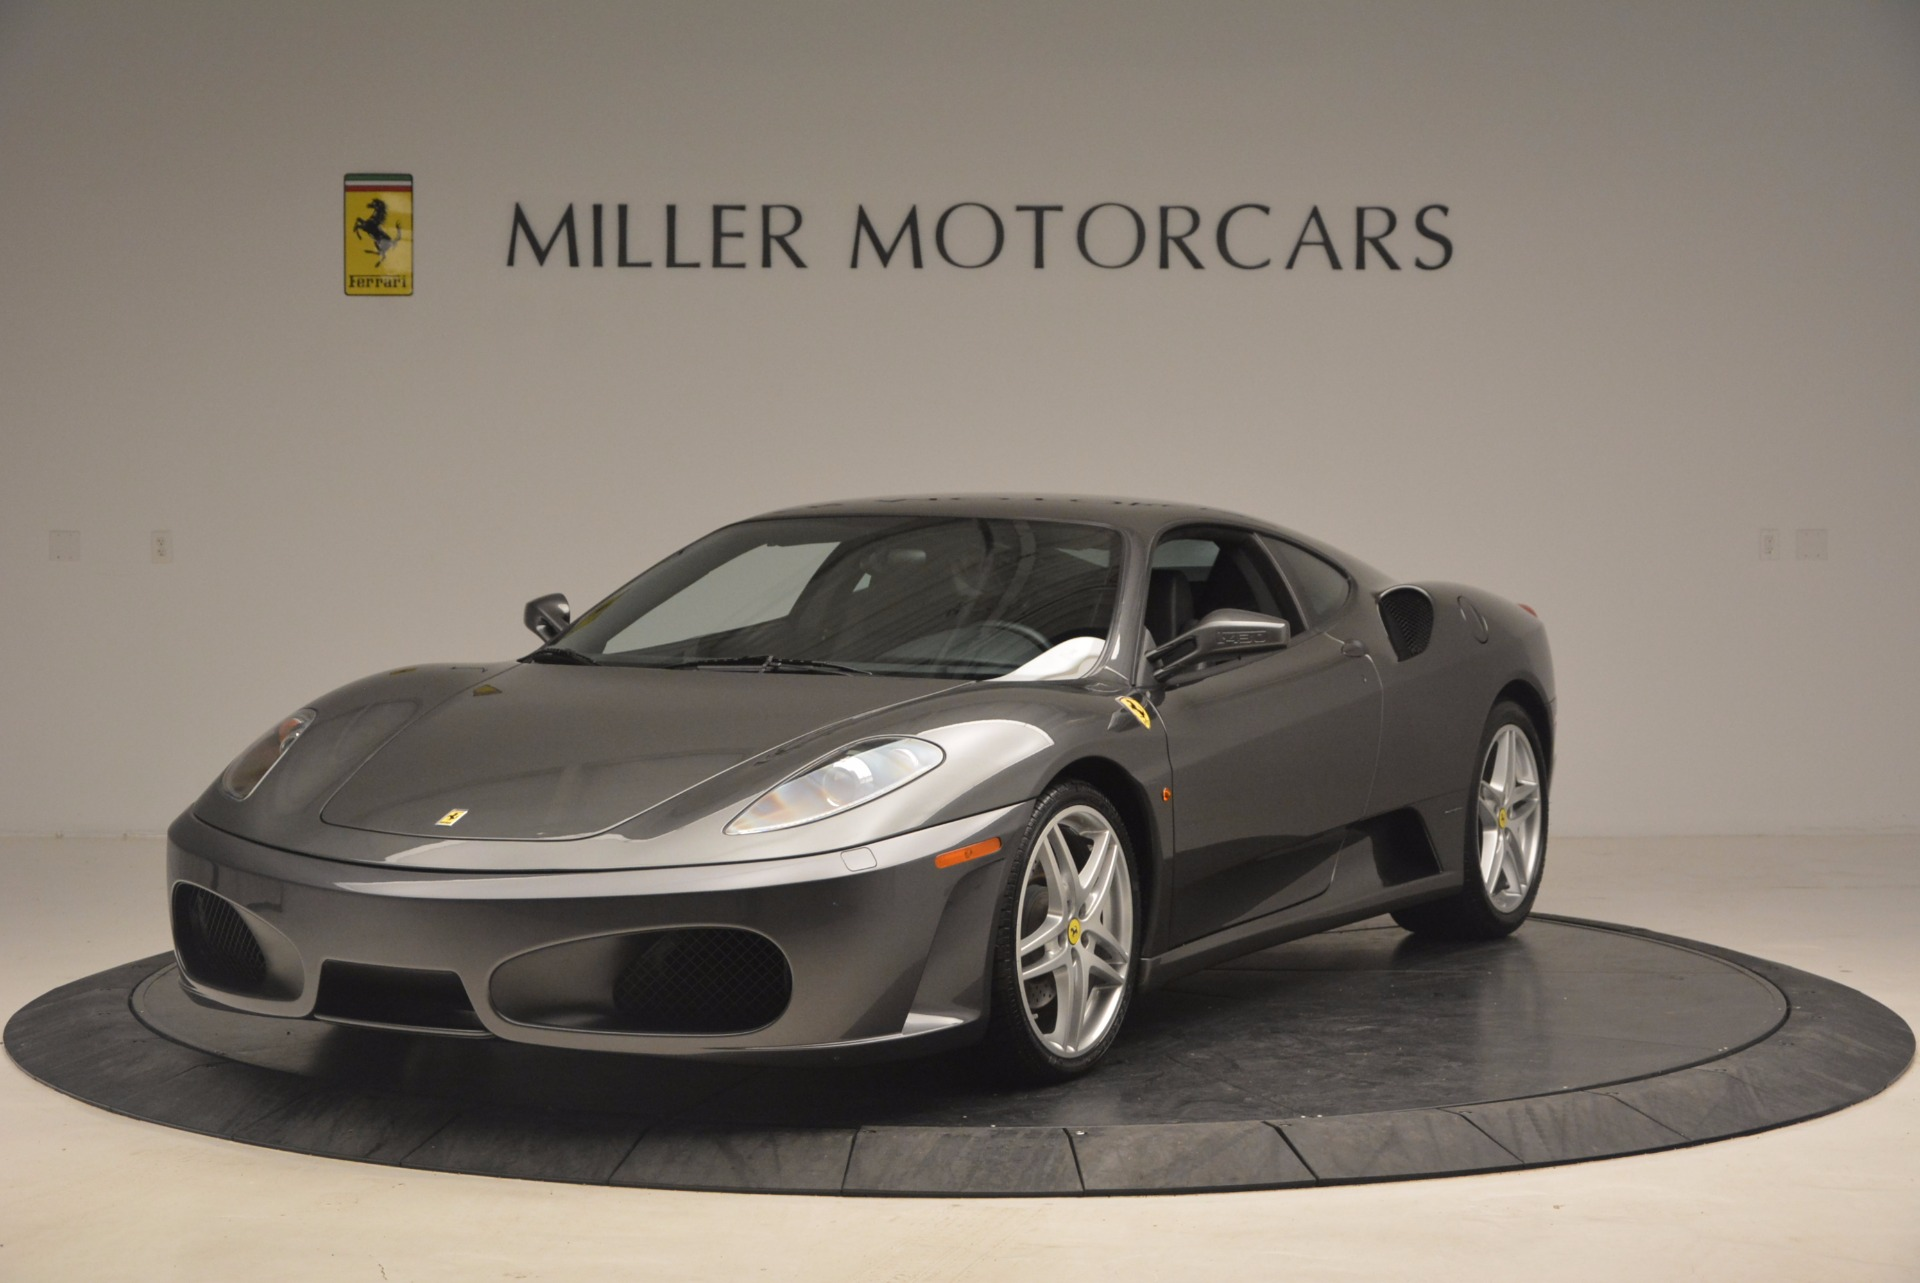 Used 2005 Ferrari F430 6-Speed Manual for sale Sold at Maserati of Westport in Westport CT 06880 1